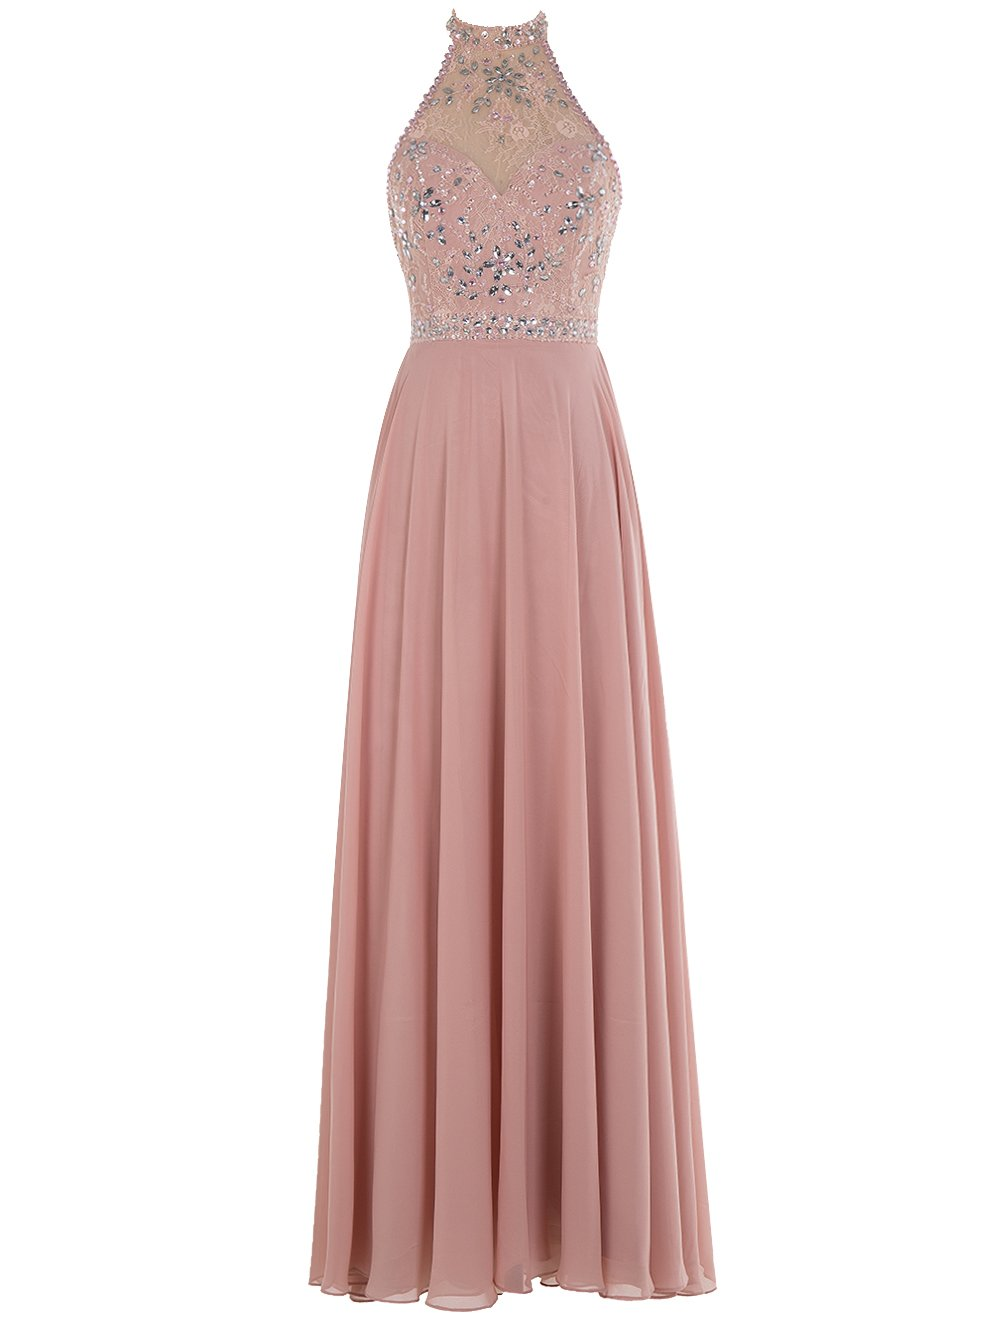 Bbonlinedress Long Prom Dresses Chiffon Beaded Jewel Evening Gowns